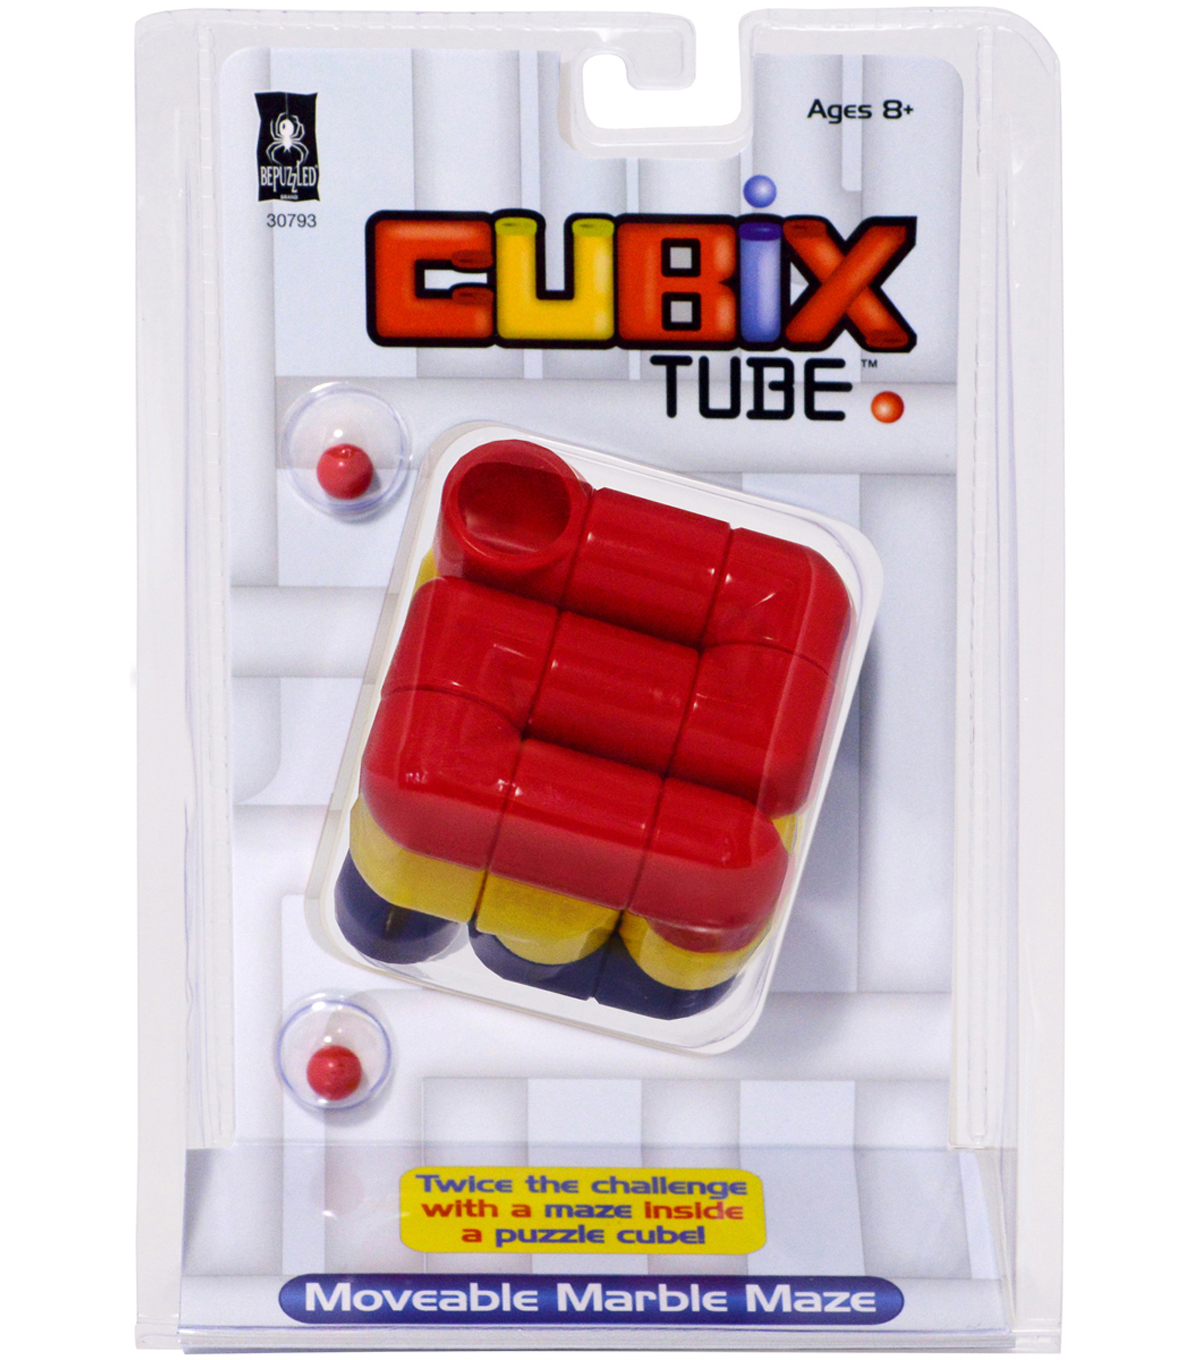 Cubix Tube Game